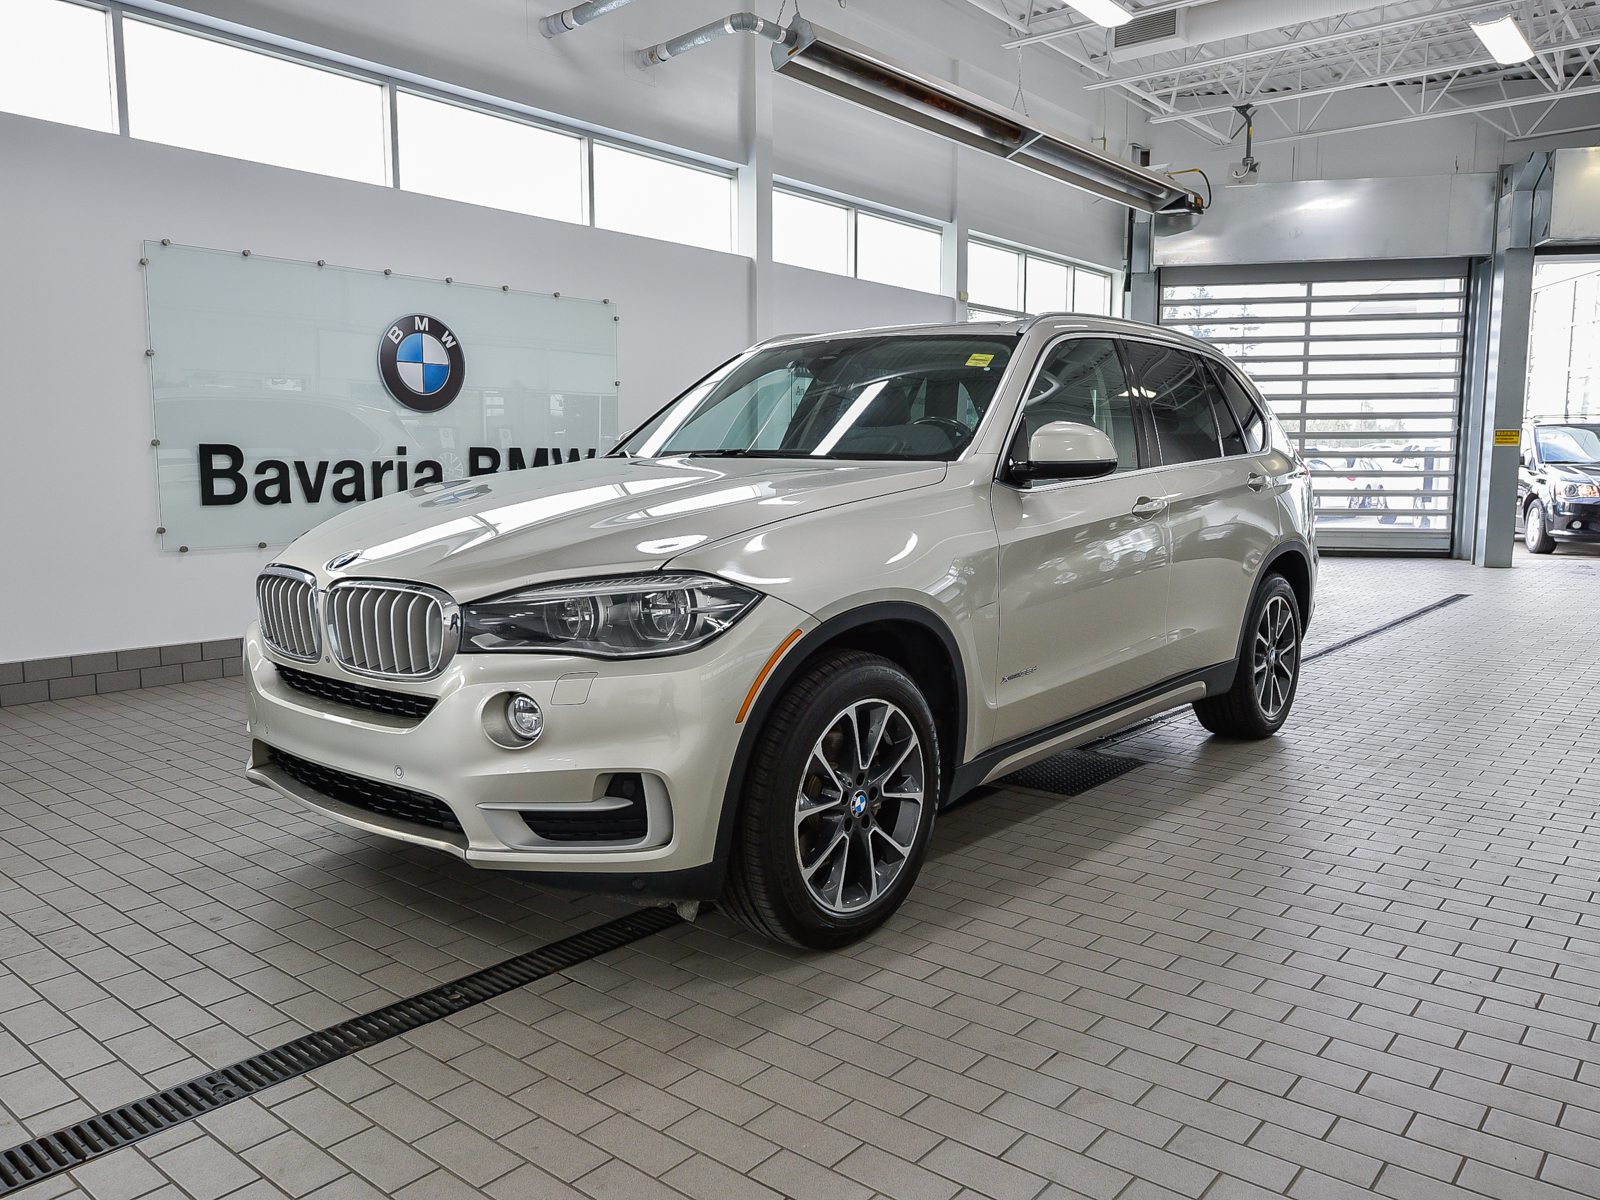 Bmw Pre Owned >> Pre Owned 2014 Bmw X5 Xdrive35d Luxury Line Suv In Edmonton